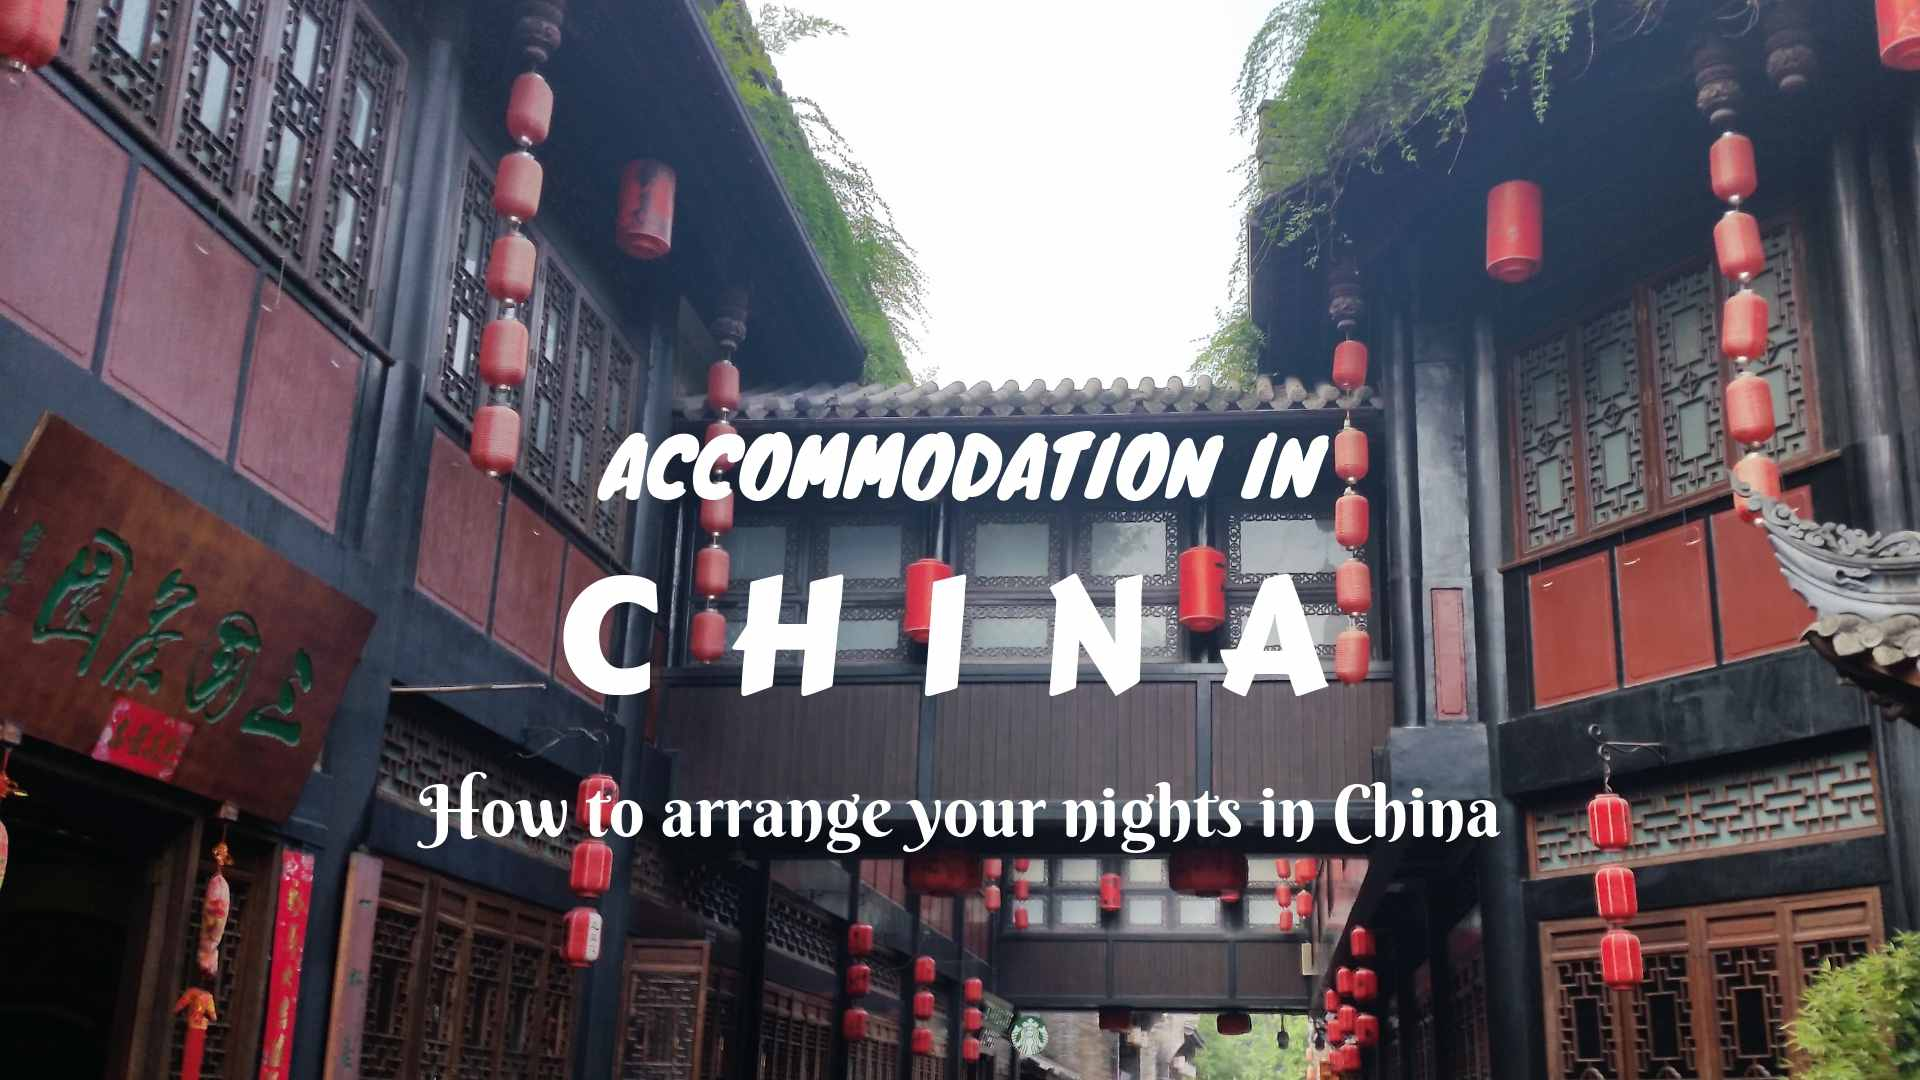 How to arrange your nights in China- some specific tips for accommodation in China